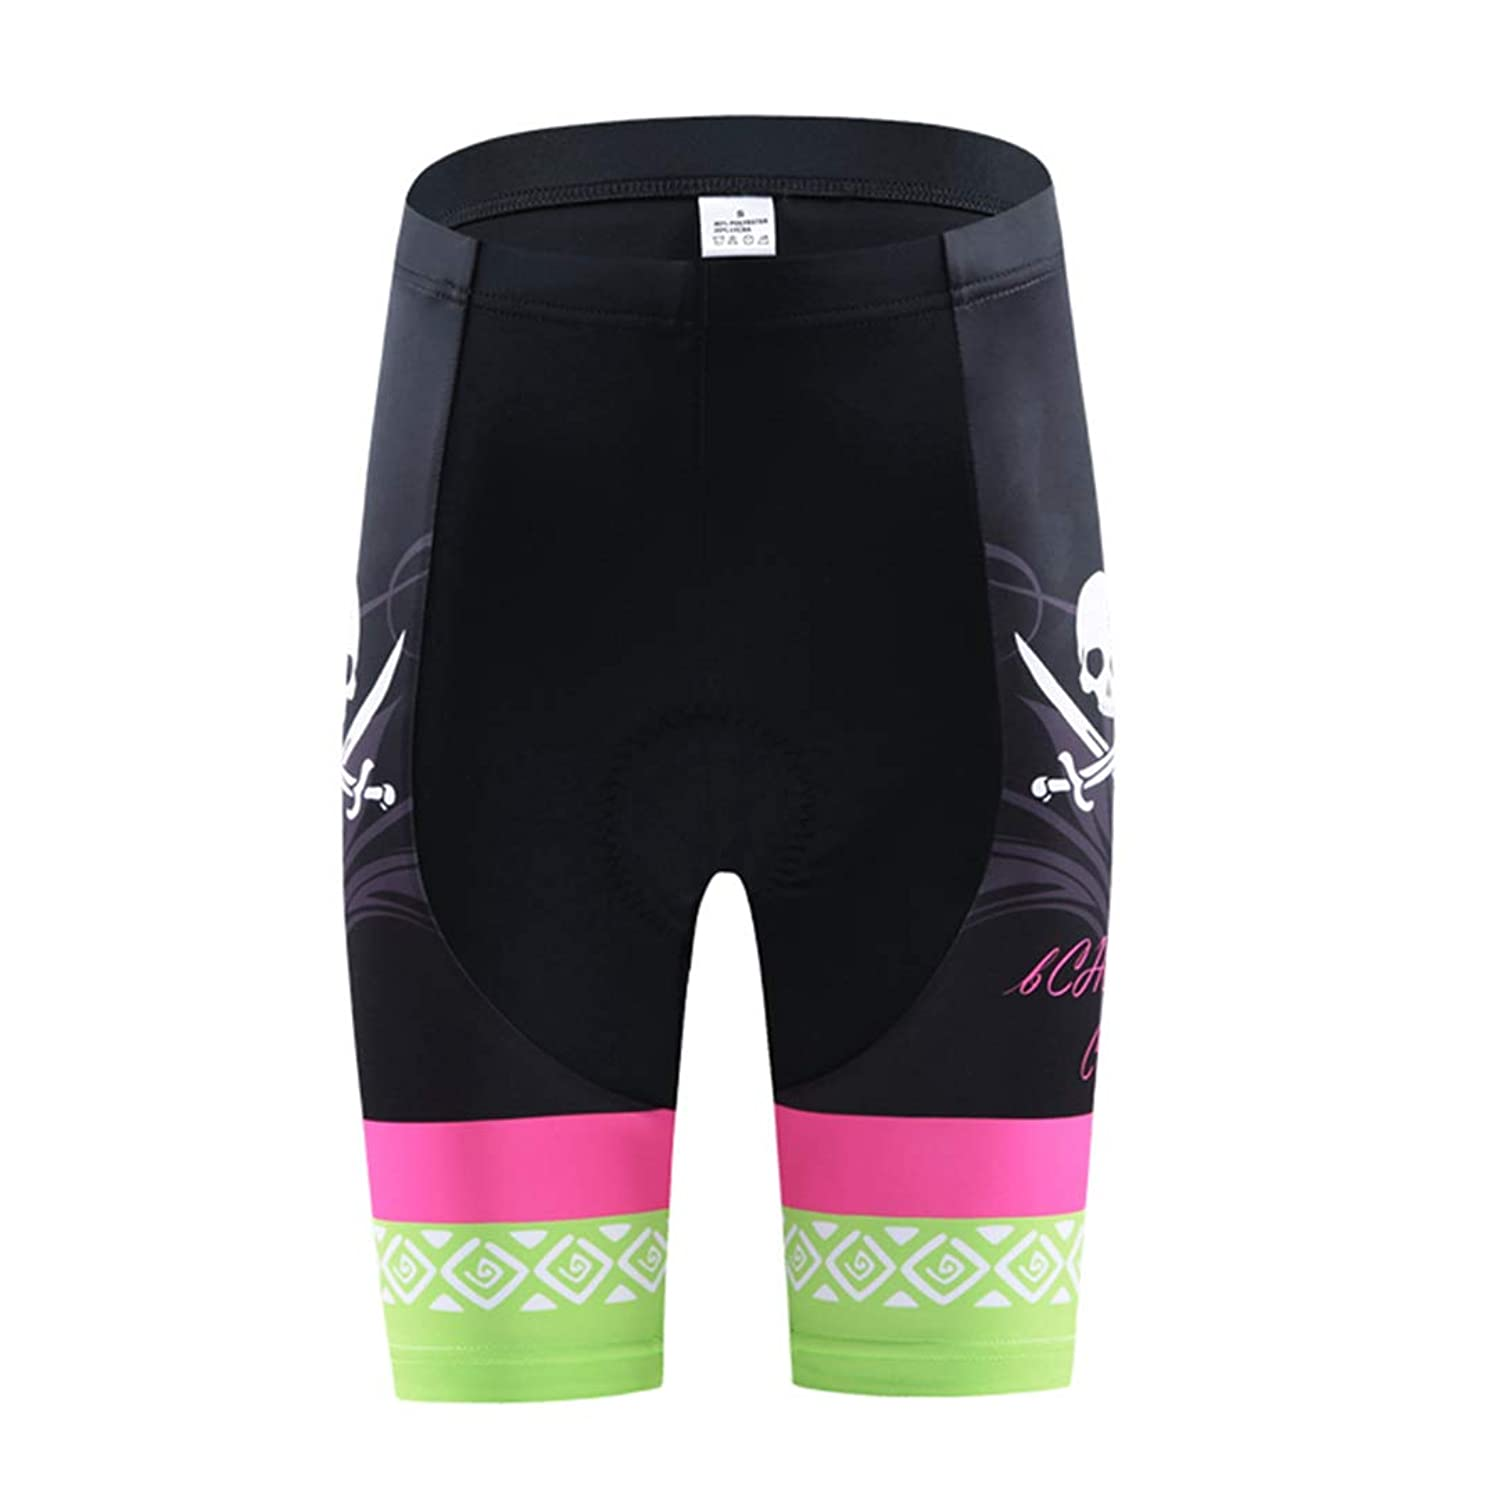 Women's Cycling Shorts MTB Bike Shorts Downhill Ladies Compression Short Cycling Tights Padded Bicycle Shorts